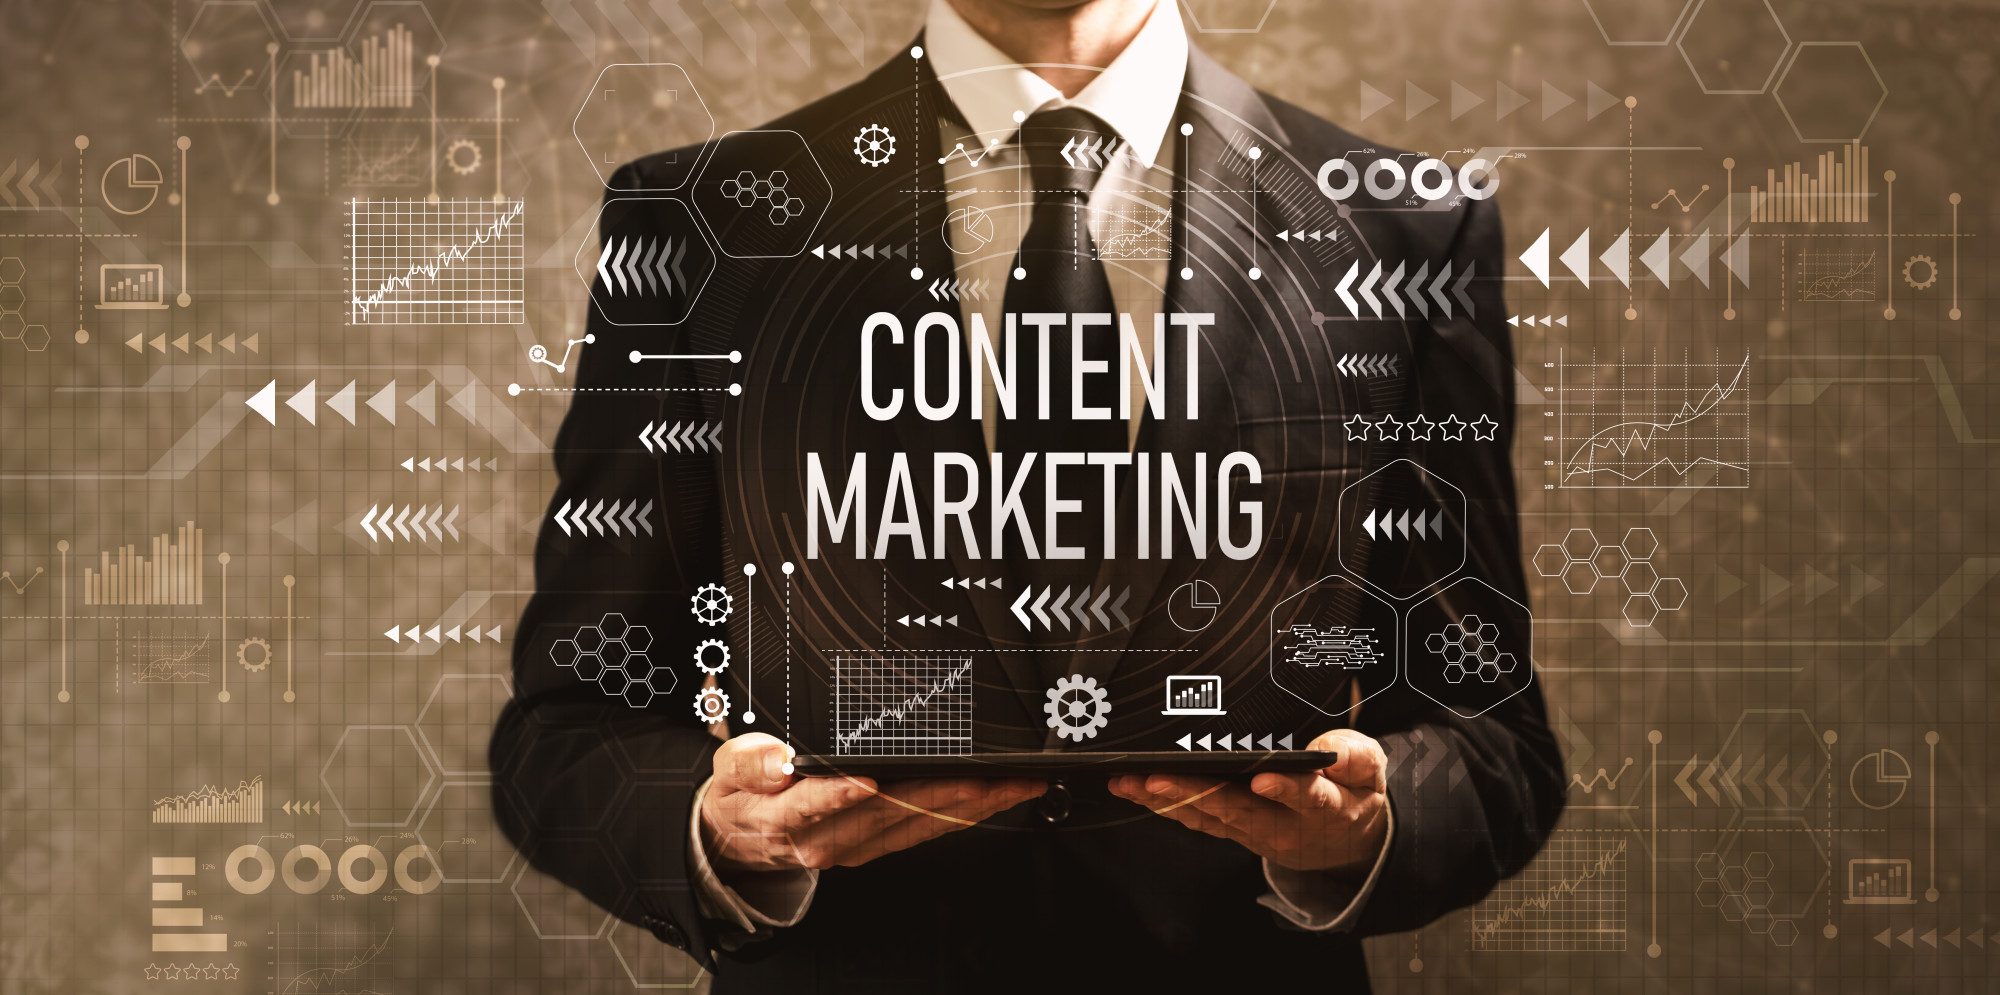 5 Content Marketing Tips You Have to Try